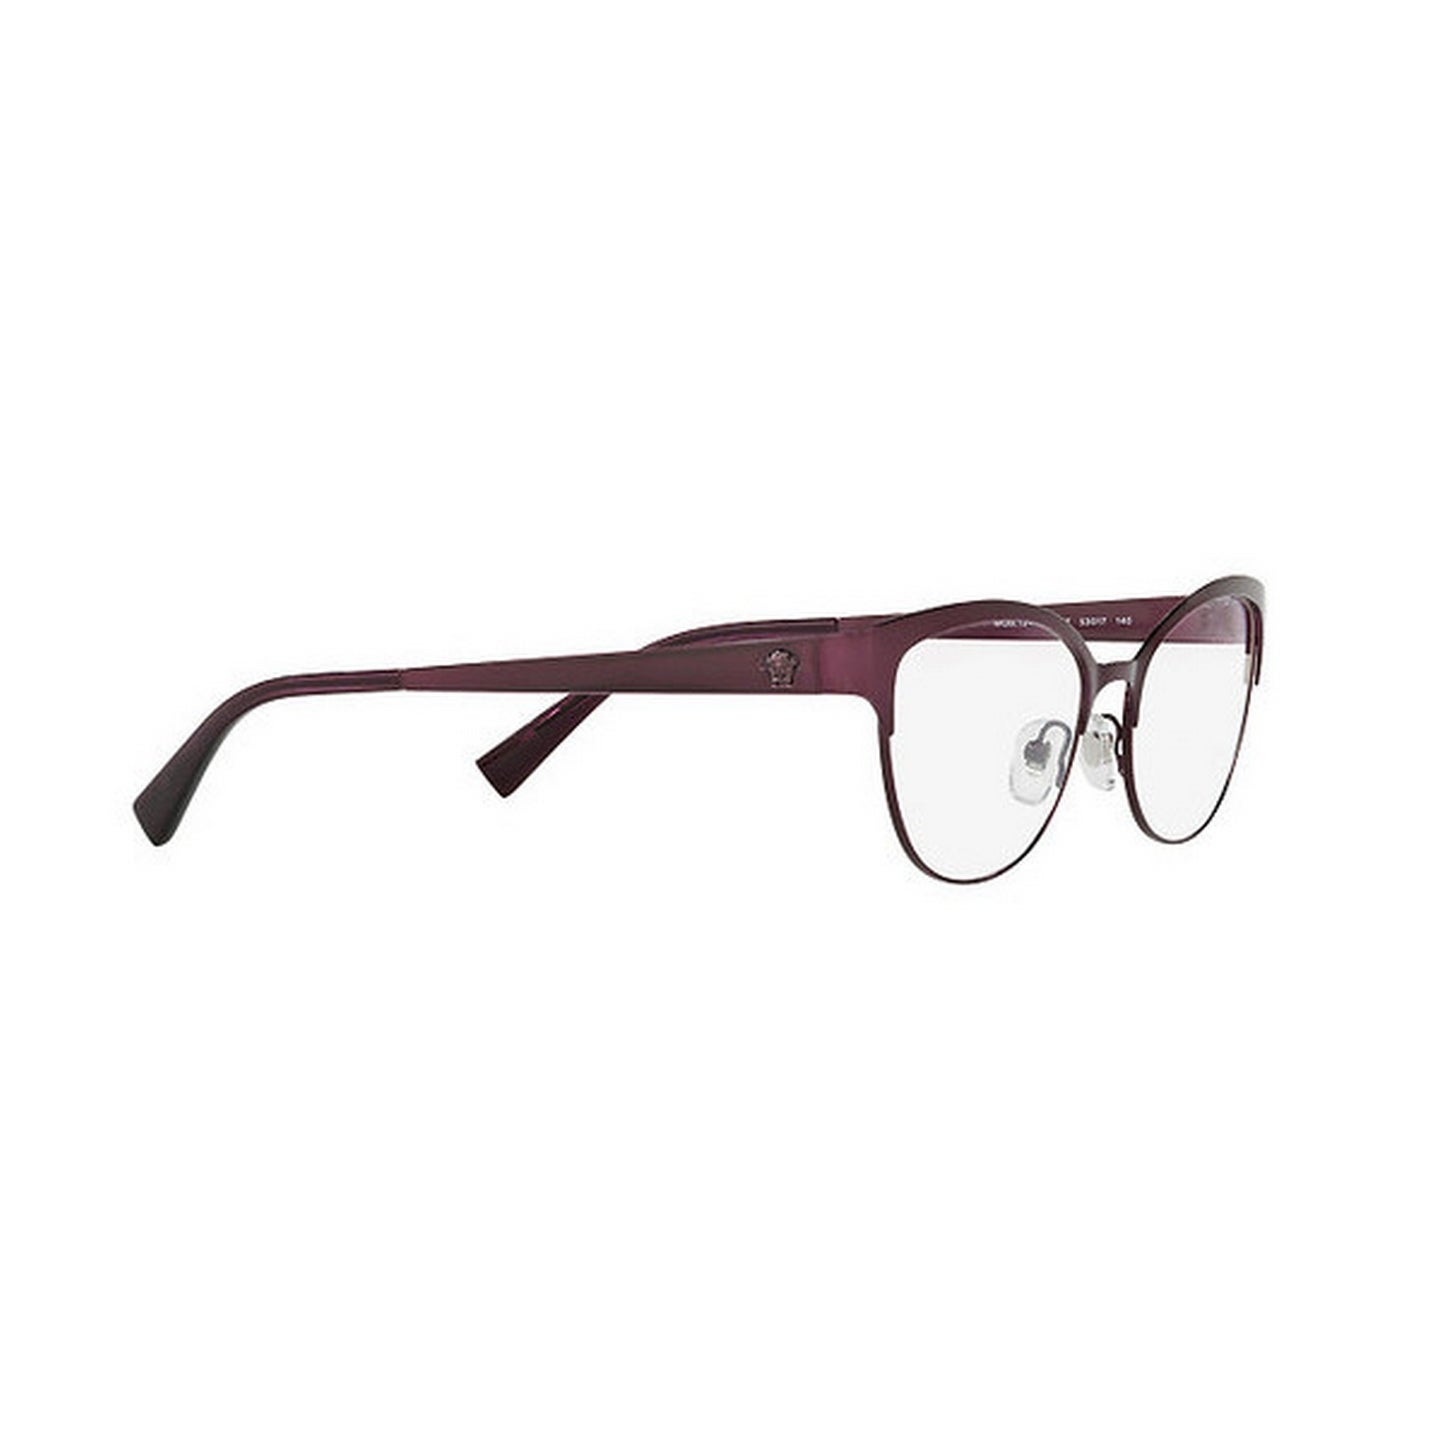 57d0d2a50b9 Shop Versace Women s VE1240 1397 53 Oval Metal Purple Clear Eyeglasses -  Free Shipping Today - Overstock - 14779986